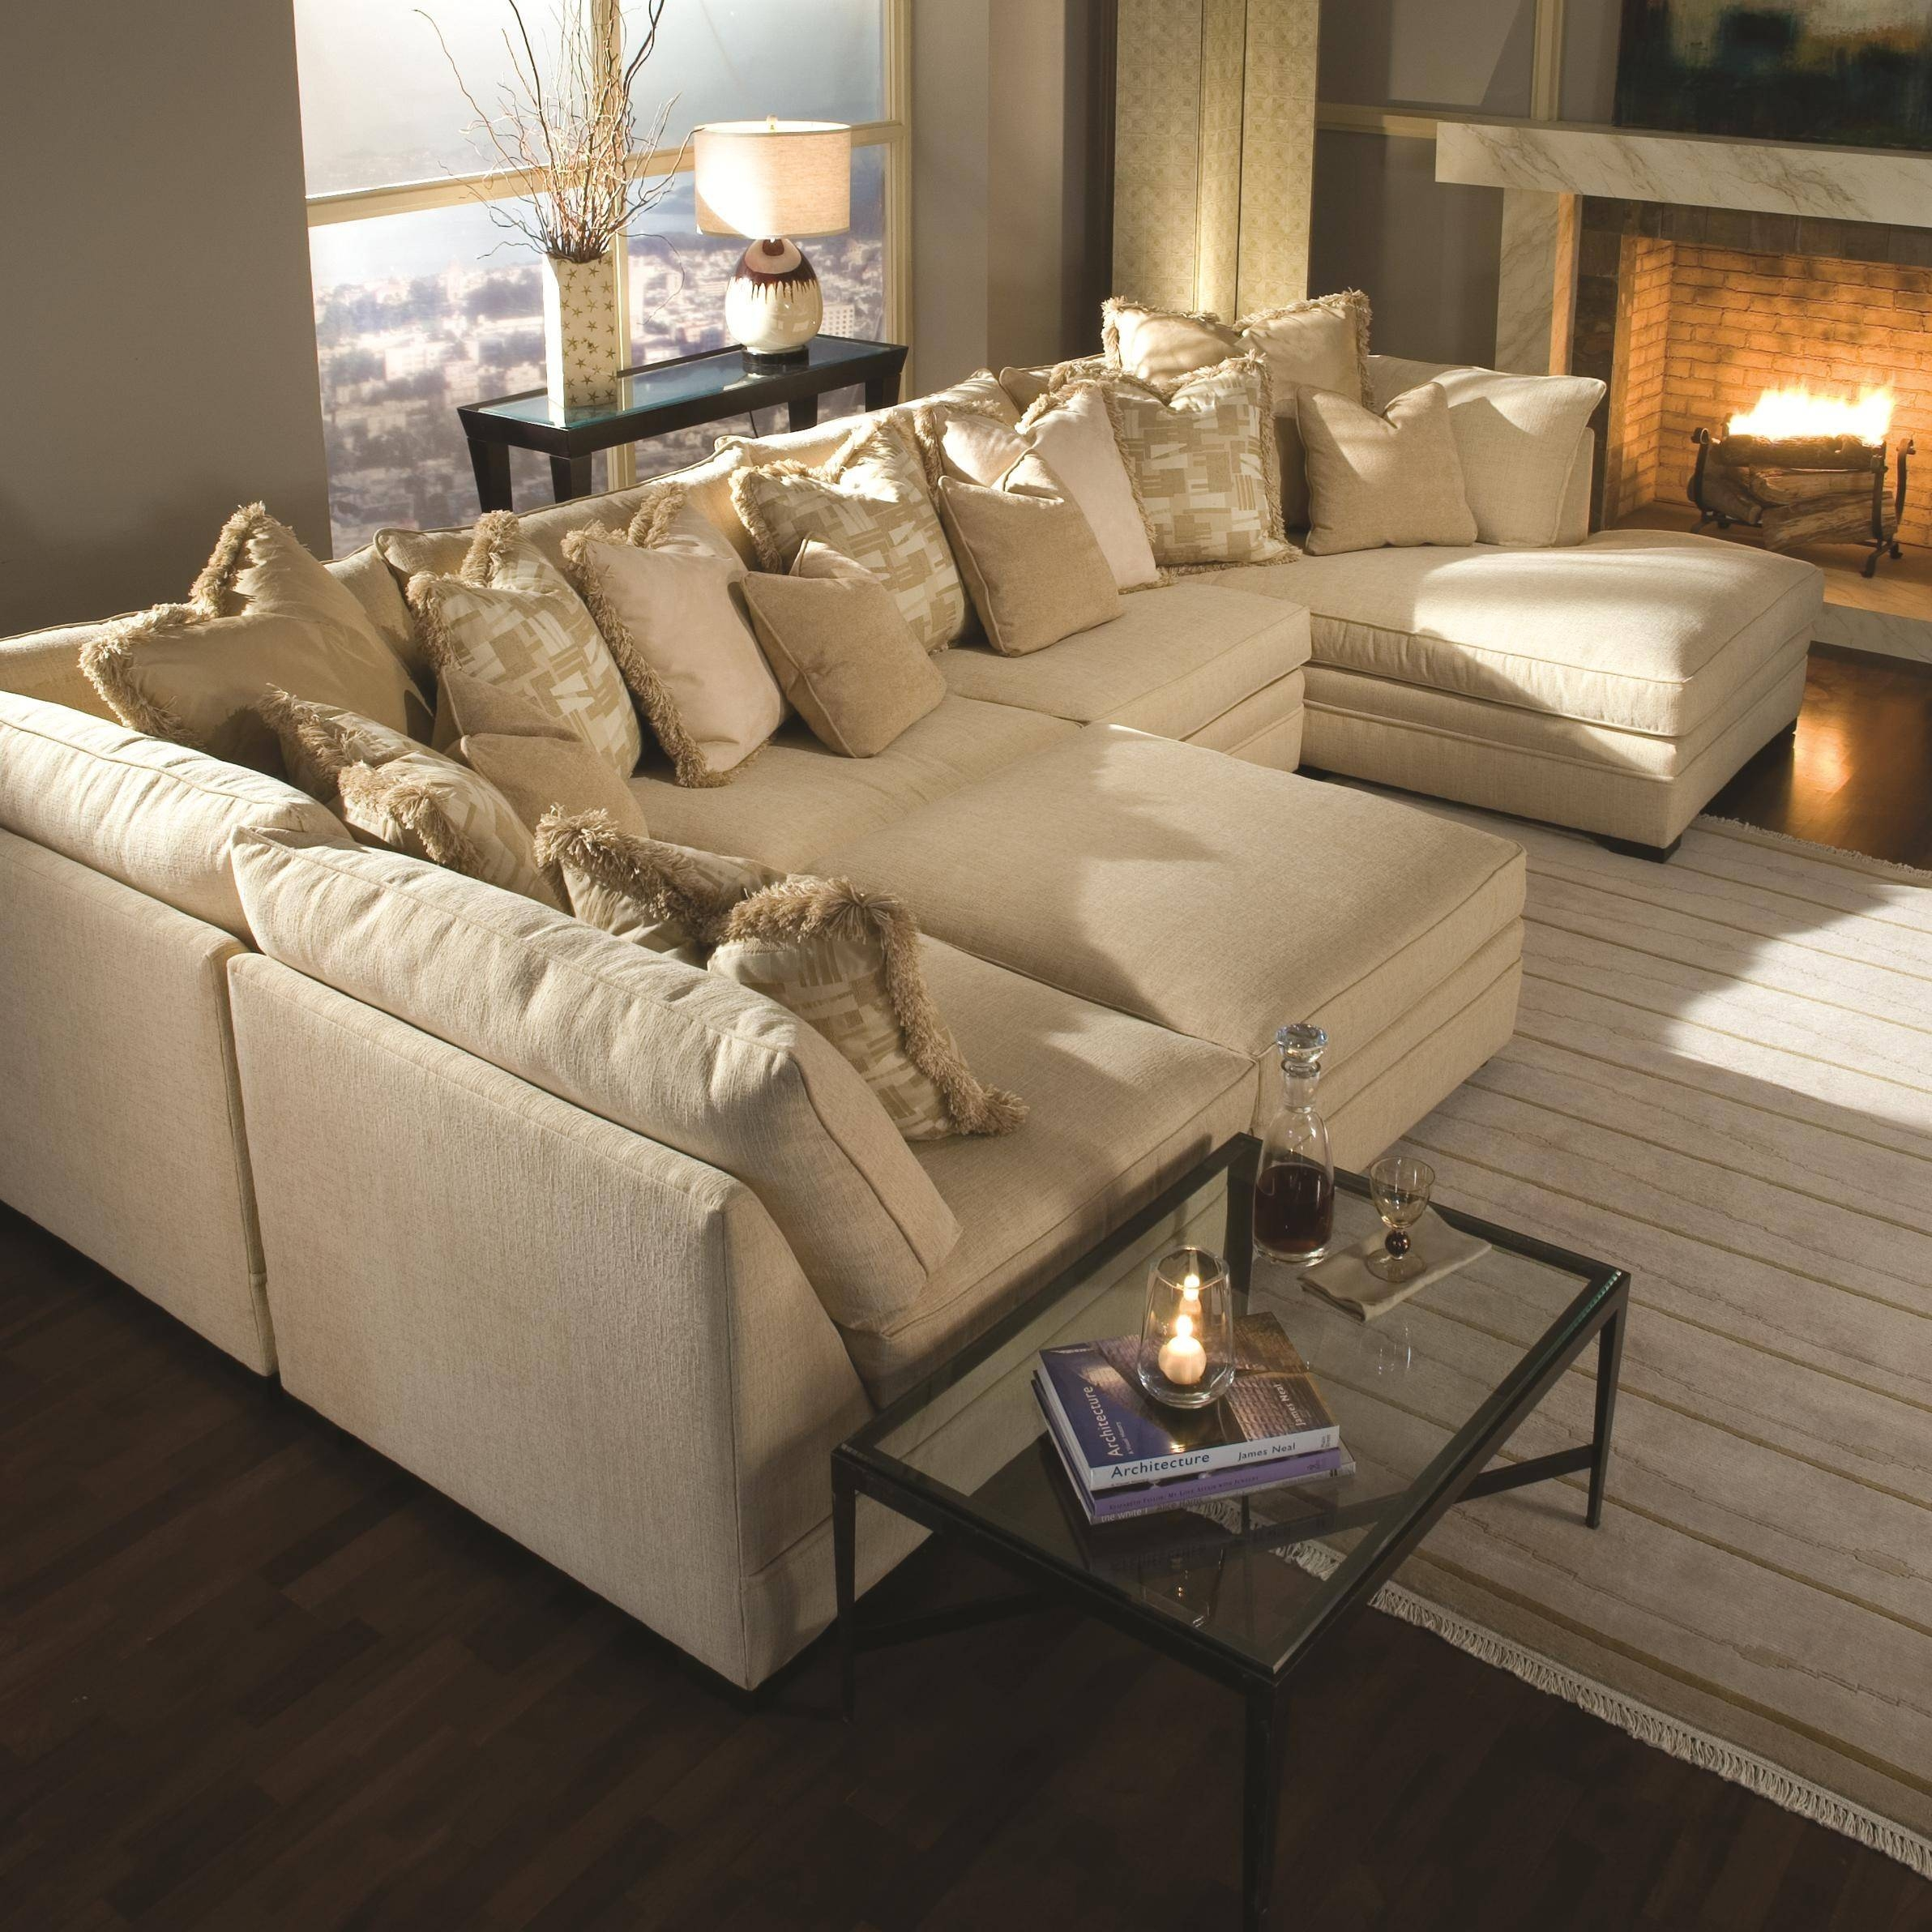 Interior: Luxury Oversized Sectional Sofa For Awesome Living Room for Elegant Sectional Sofas (Image 23 of 30)